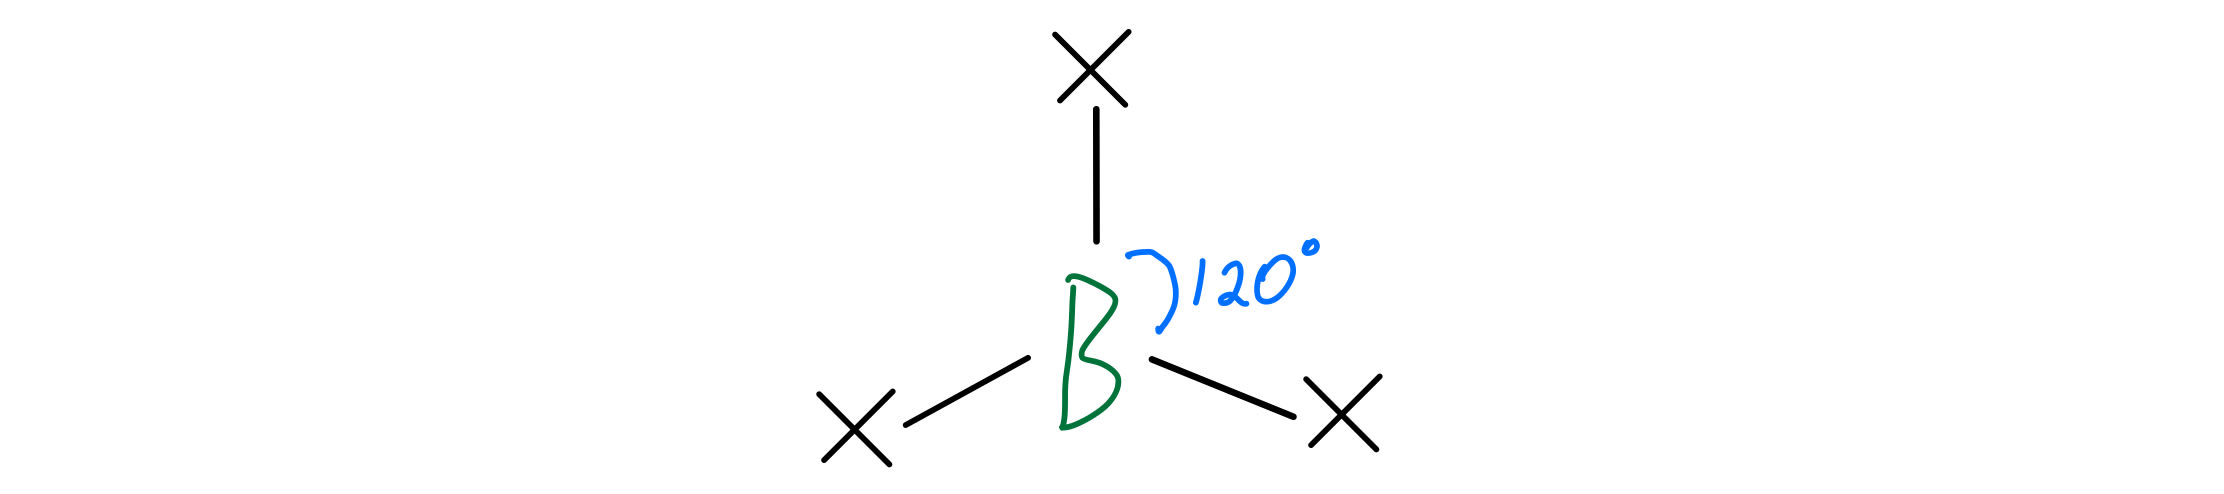 Boron bond angles